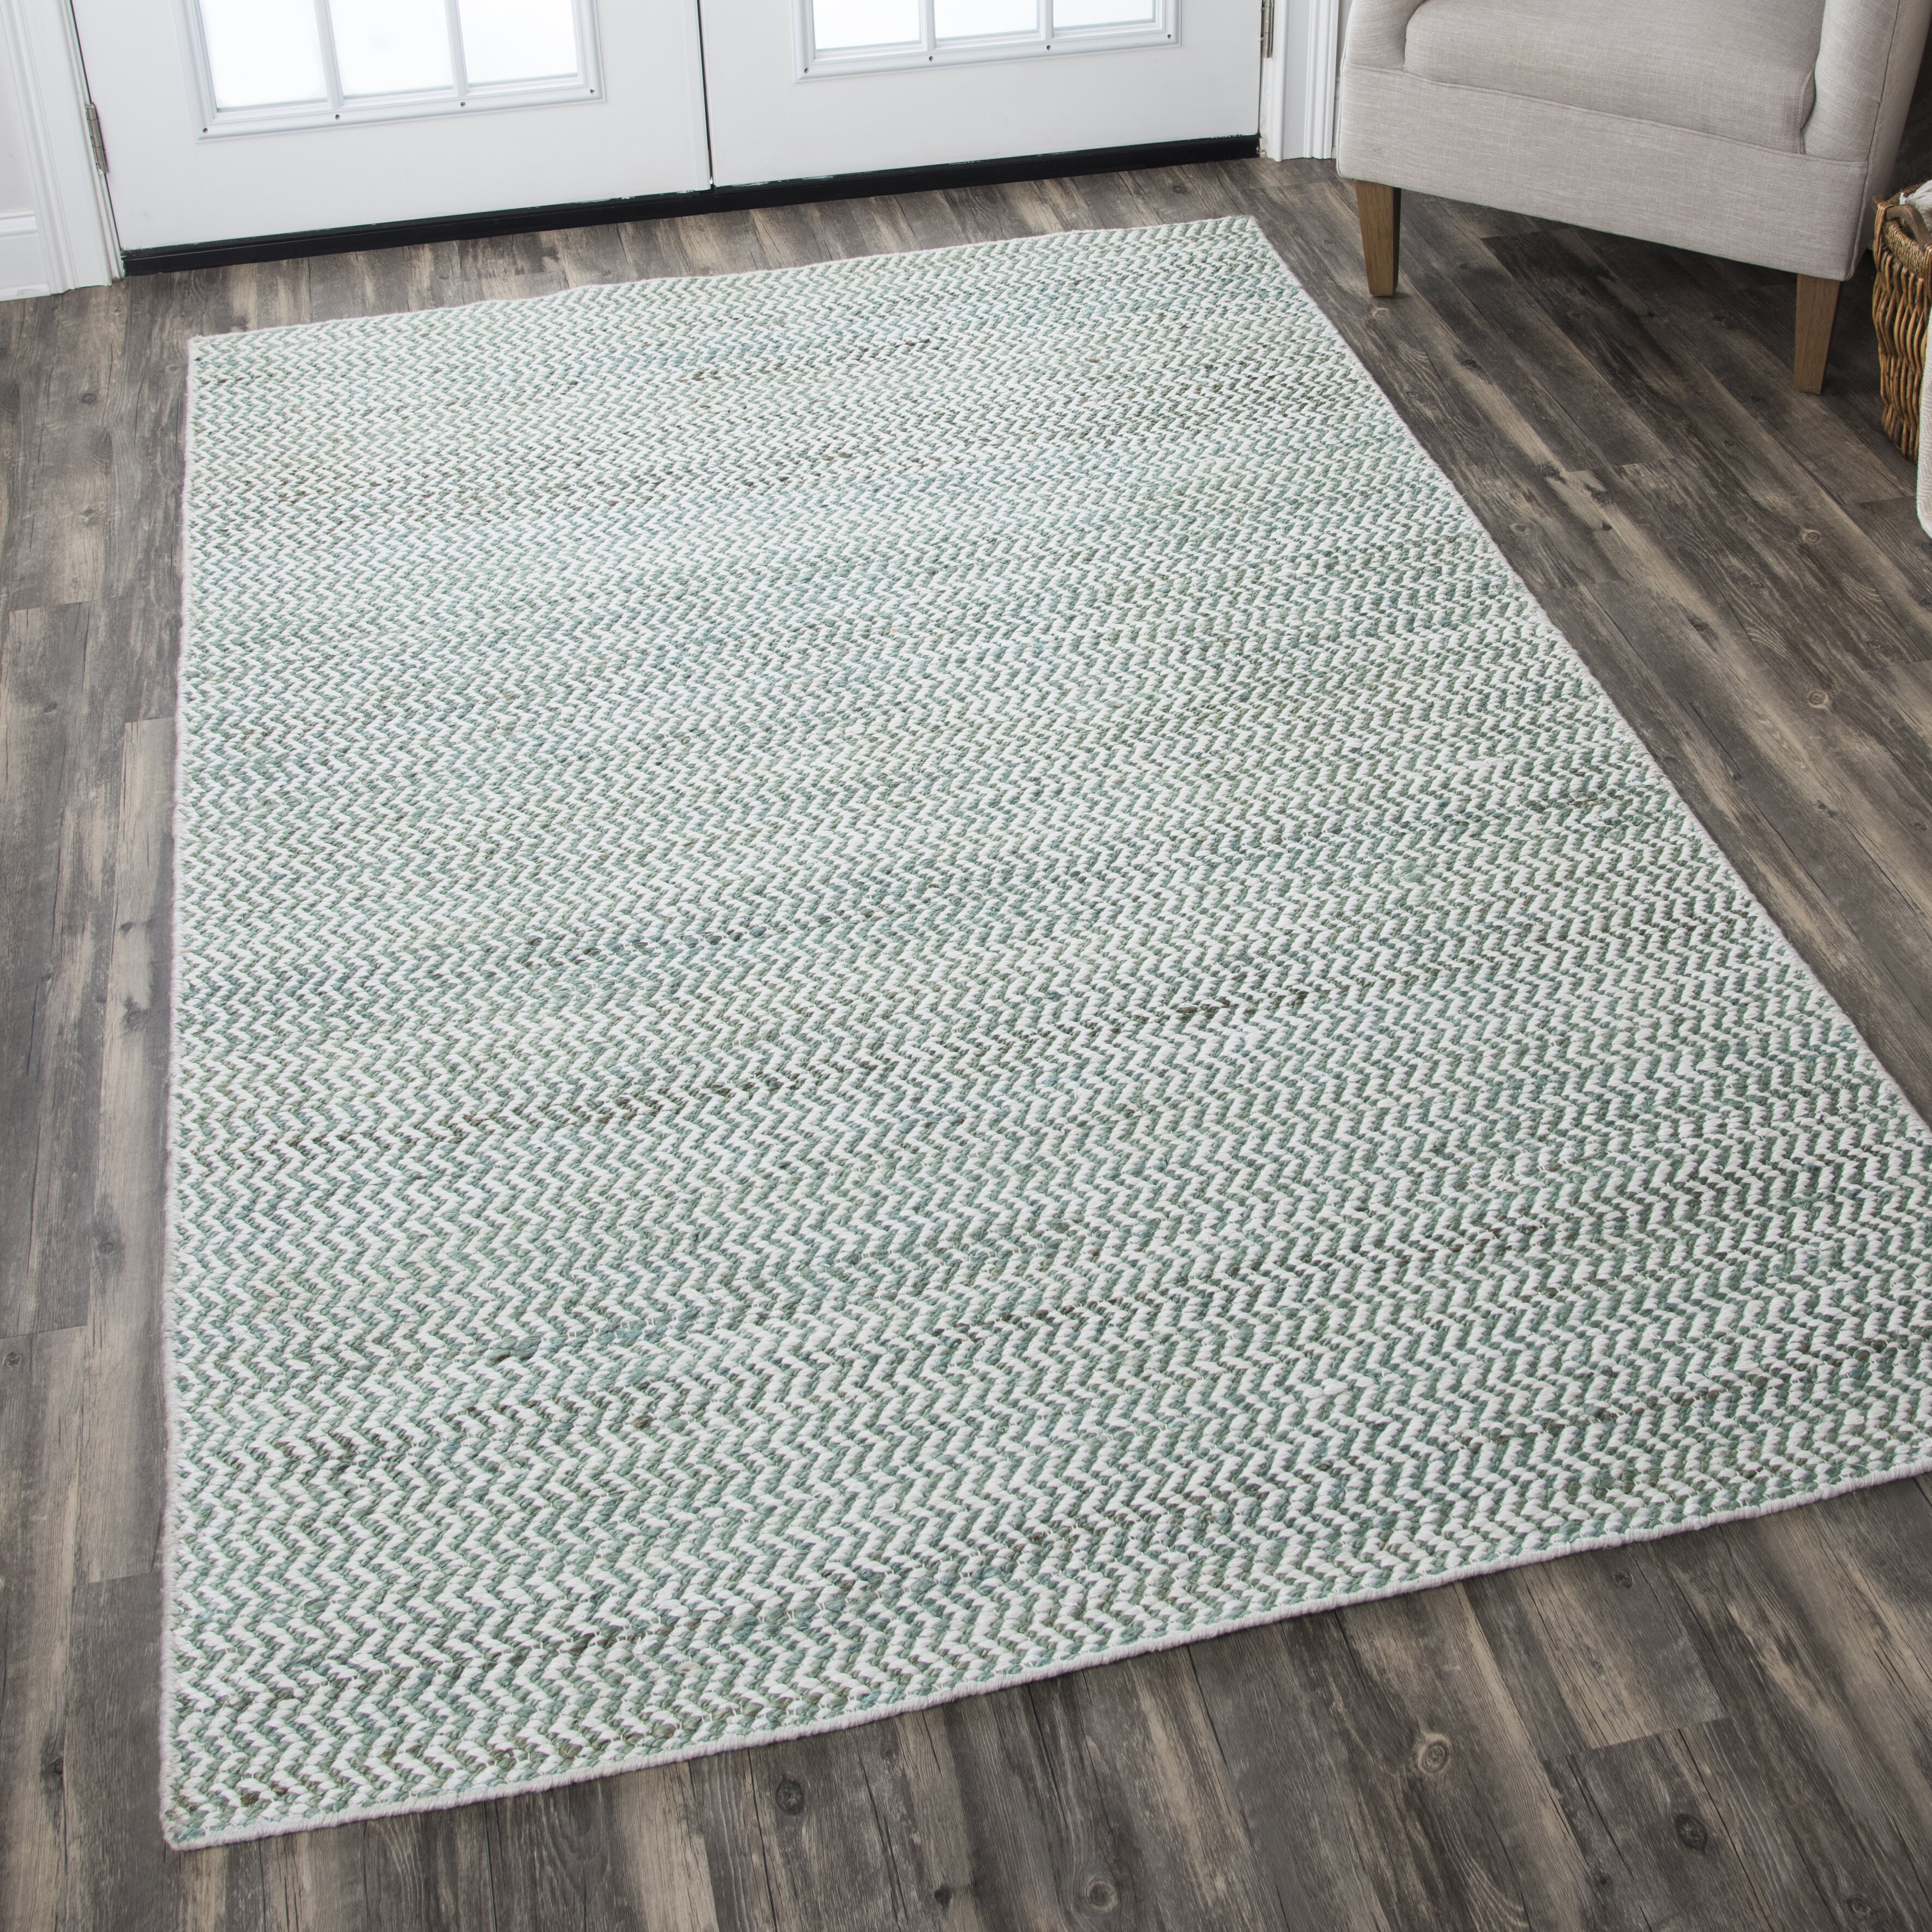 Latitude Run Killington Chevron Hand Woven Flatweave Wool Blue Area Rug Reviews Wayfair